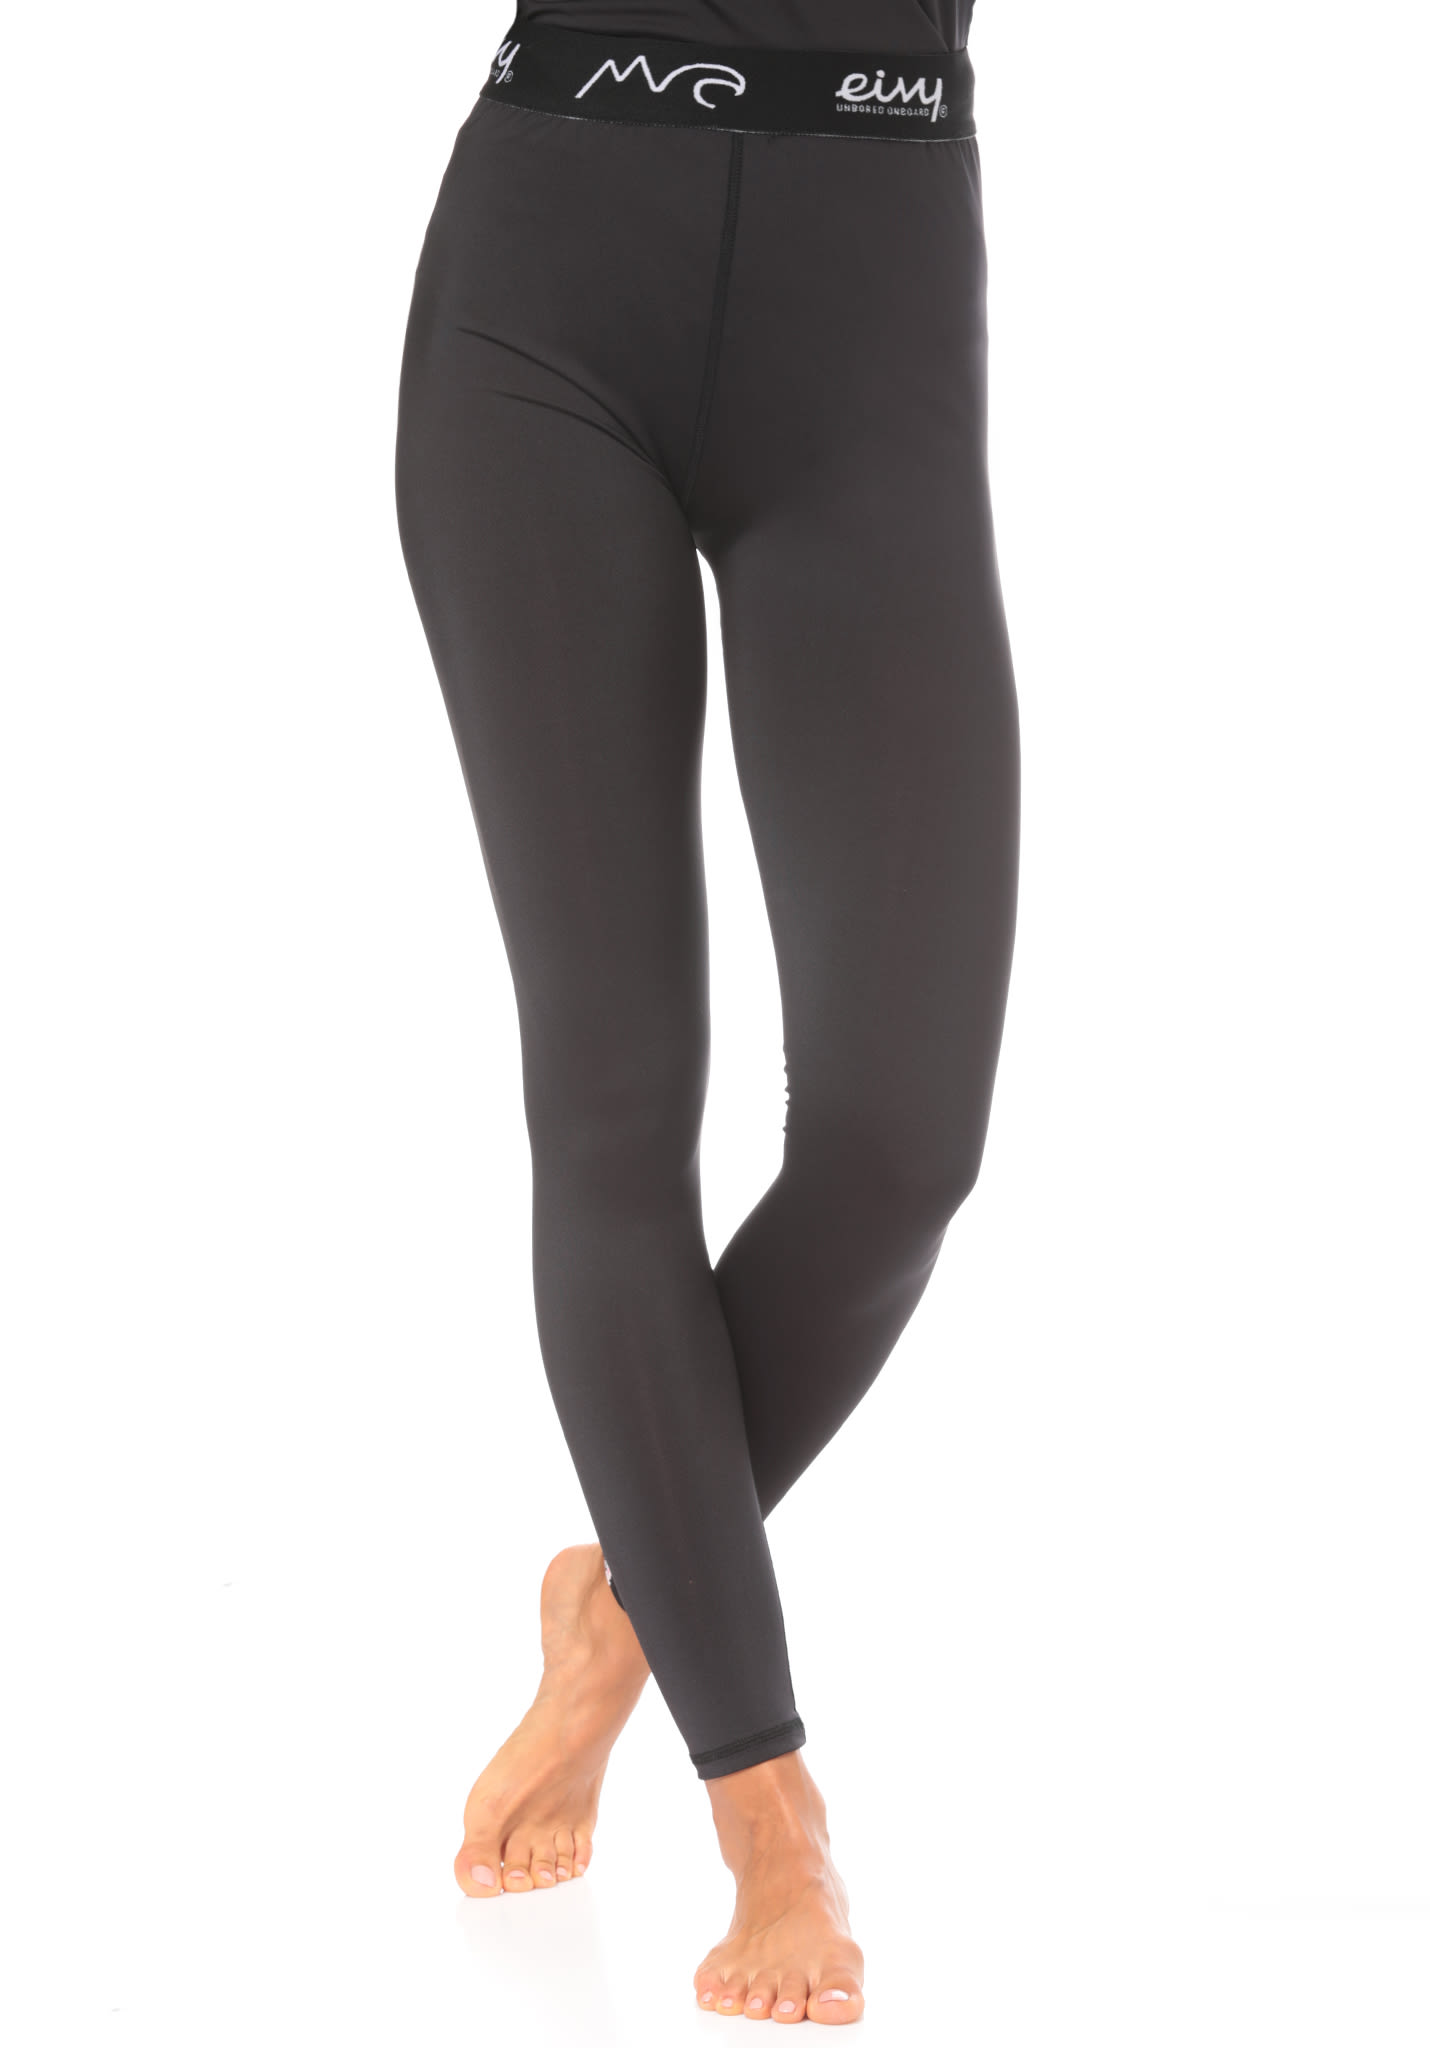 ea85c6279 EIVY Icecold Winter Tights - Functional Bottoms for Women - Black - Planet  Sports